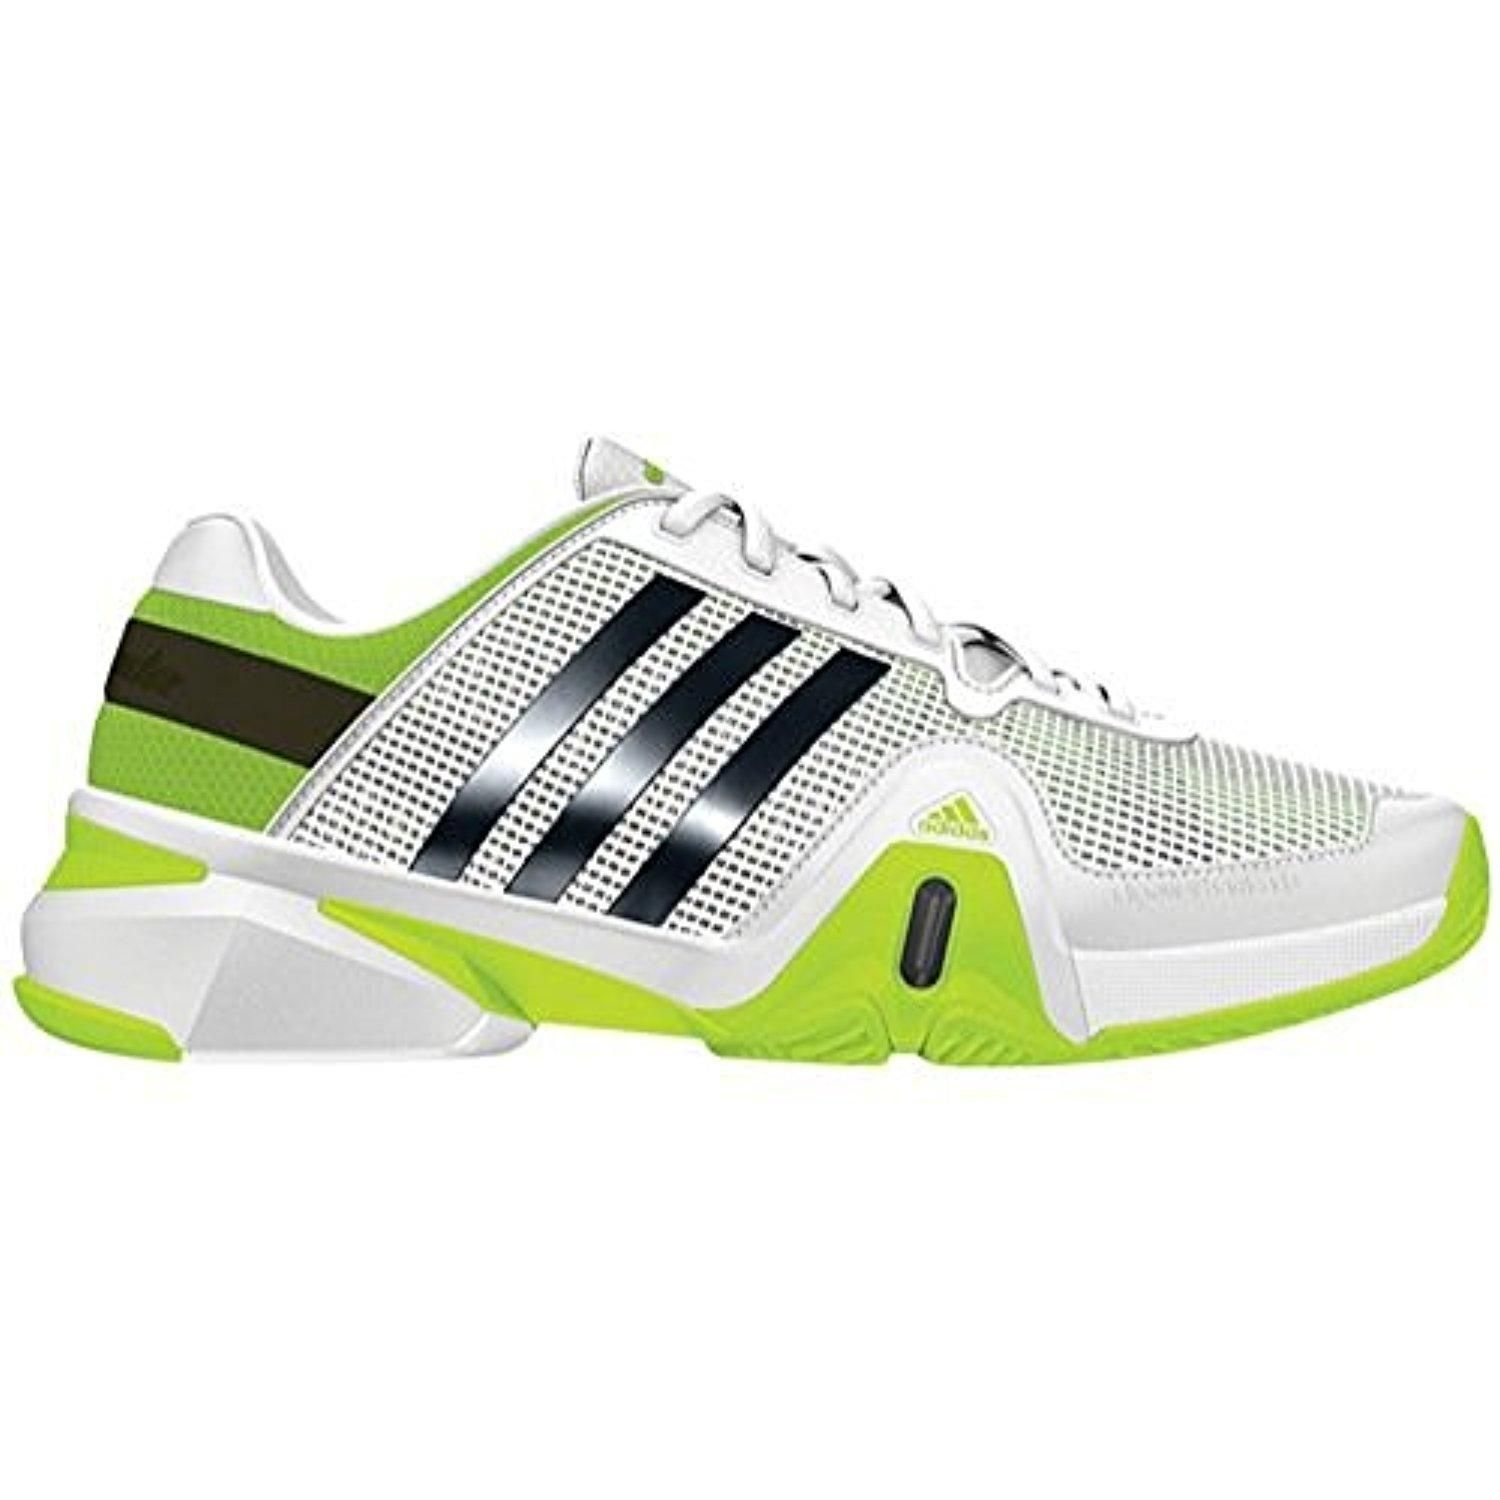 detailed look 64acb f3b9d Adidas Men s Adipower Barricade 8 Tennis Shoe-Running White Night  Shade Solar Slime-7.5 - Brought to you by Avarsha.com